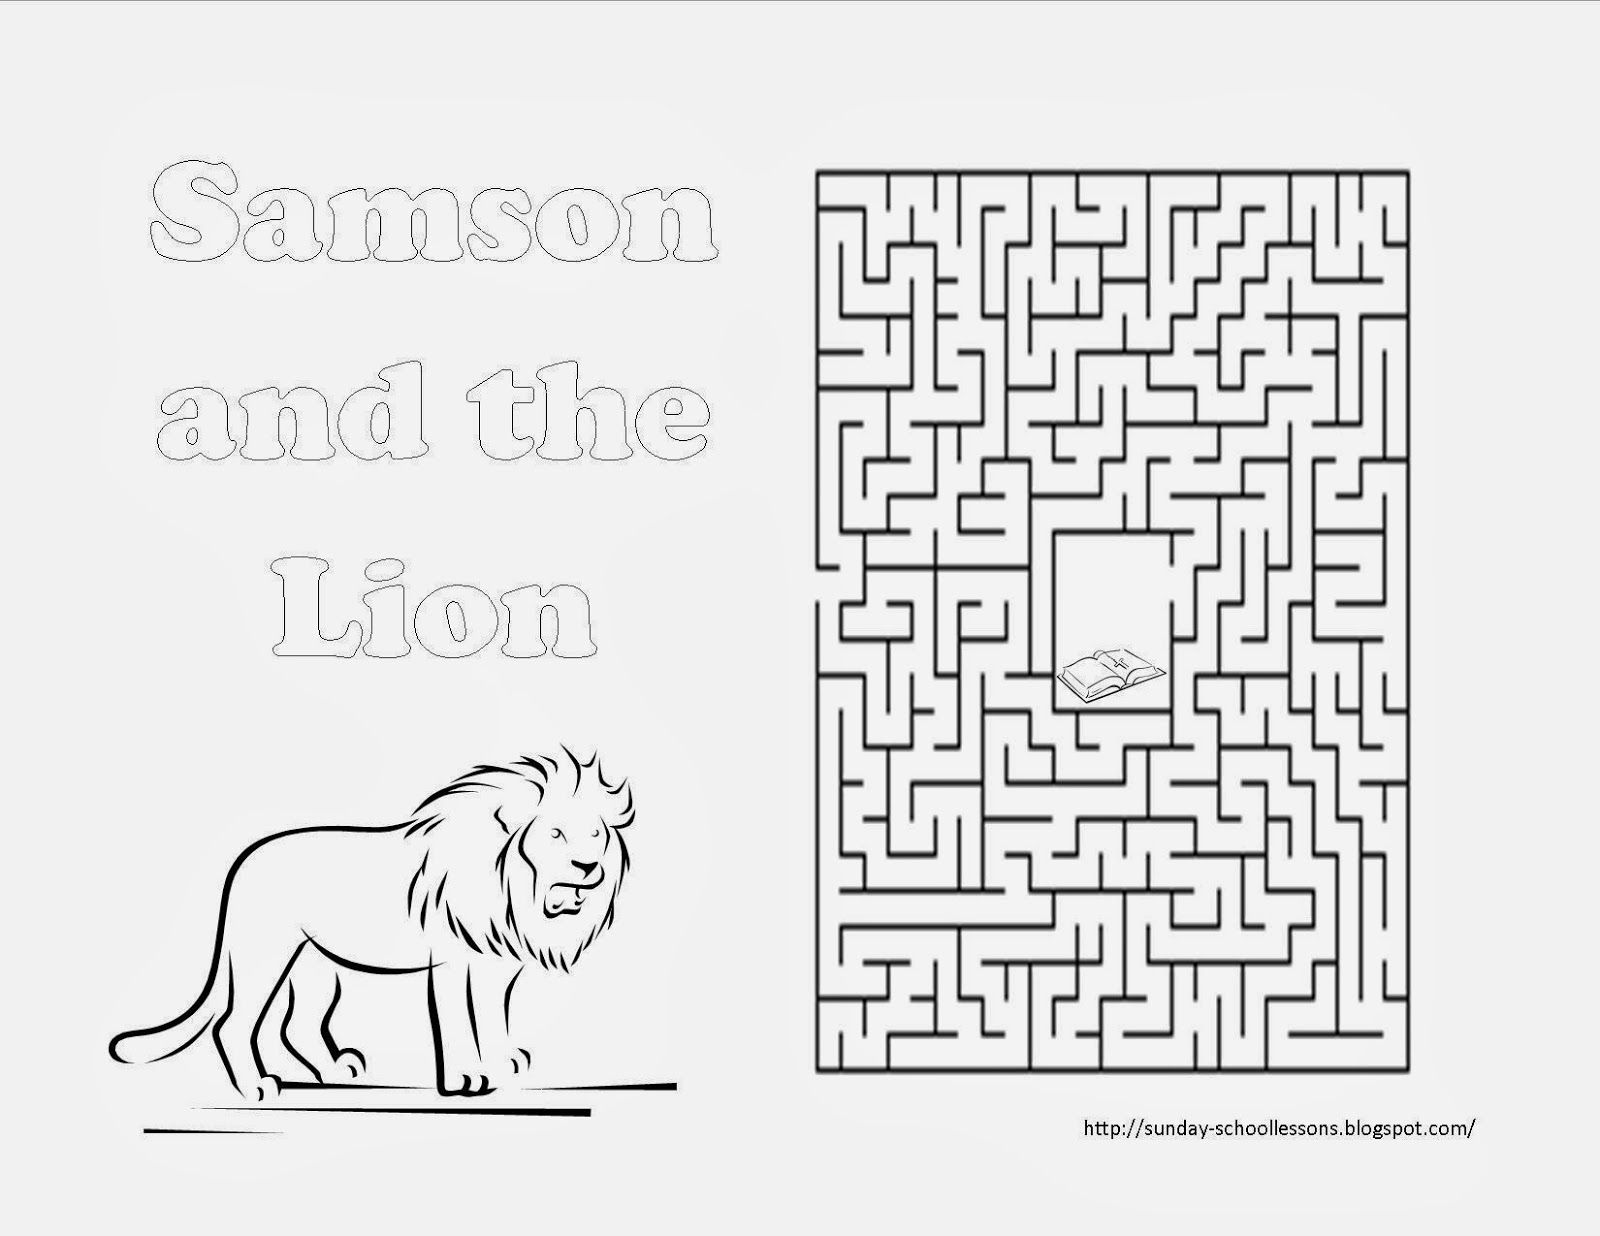 Samson and the Lion Maze Sunday School Activity Sunday School